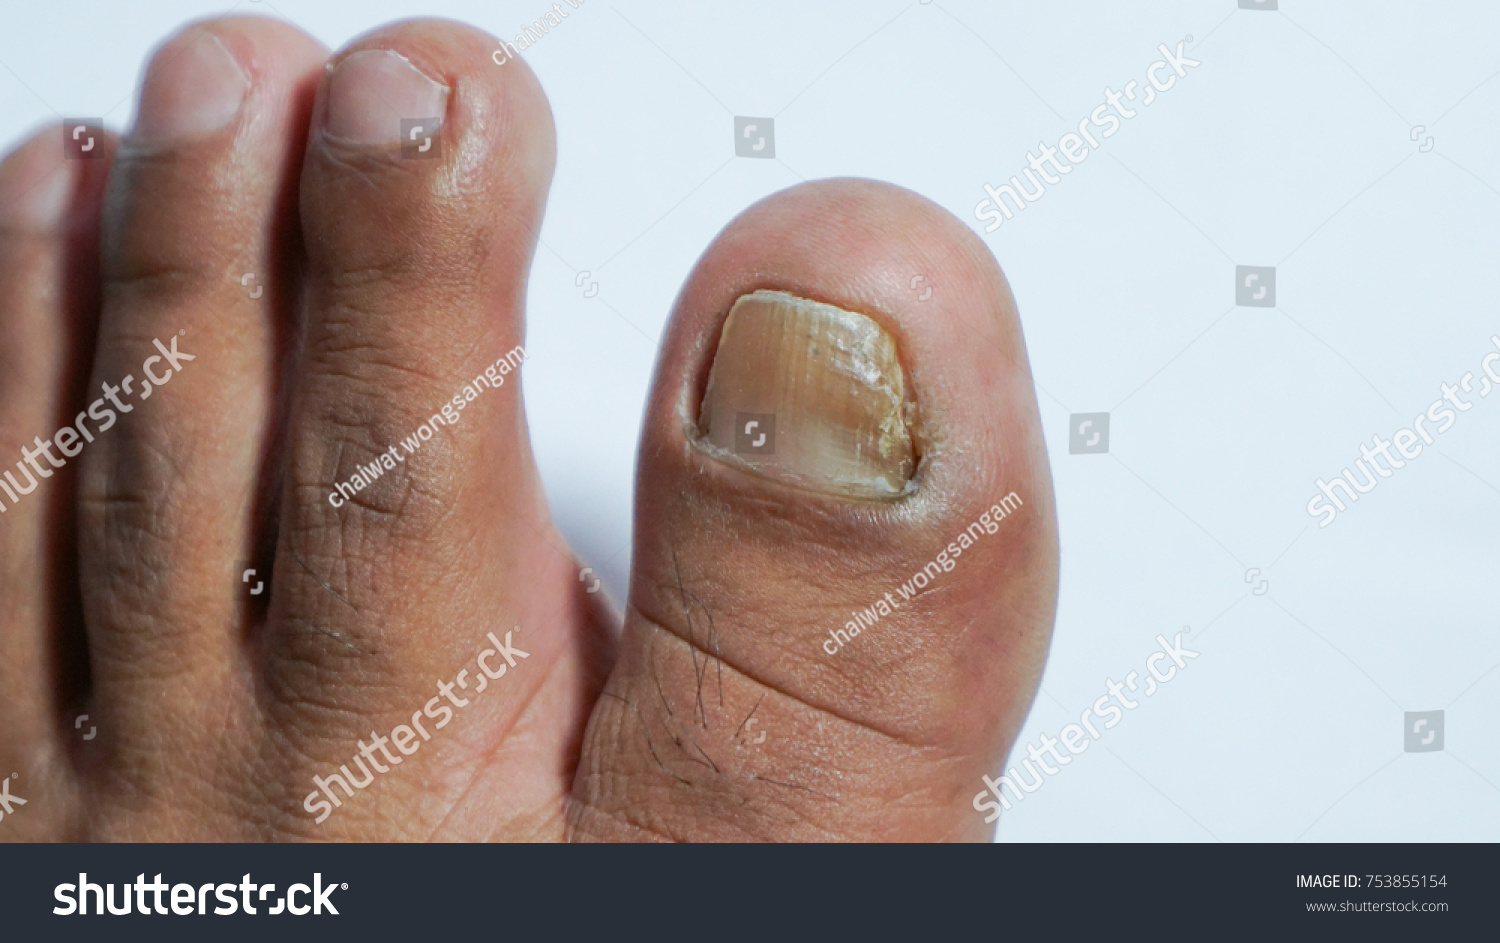 Ingrown Toenail Fingers On Foot Pedicure Stock Photo (Royalty Free ...